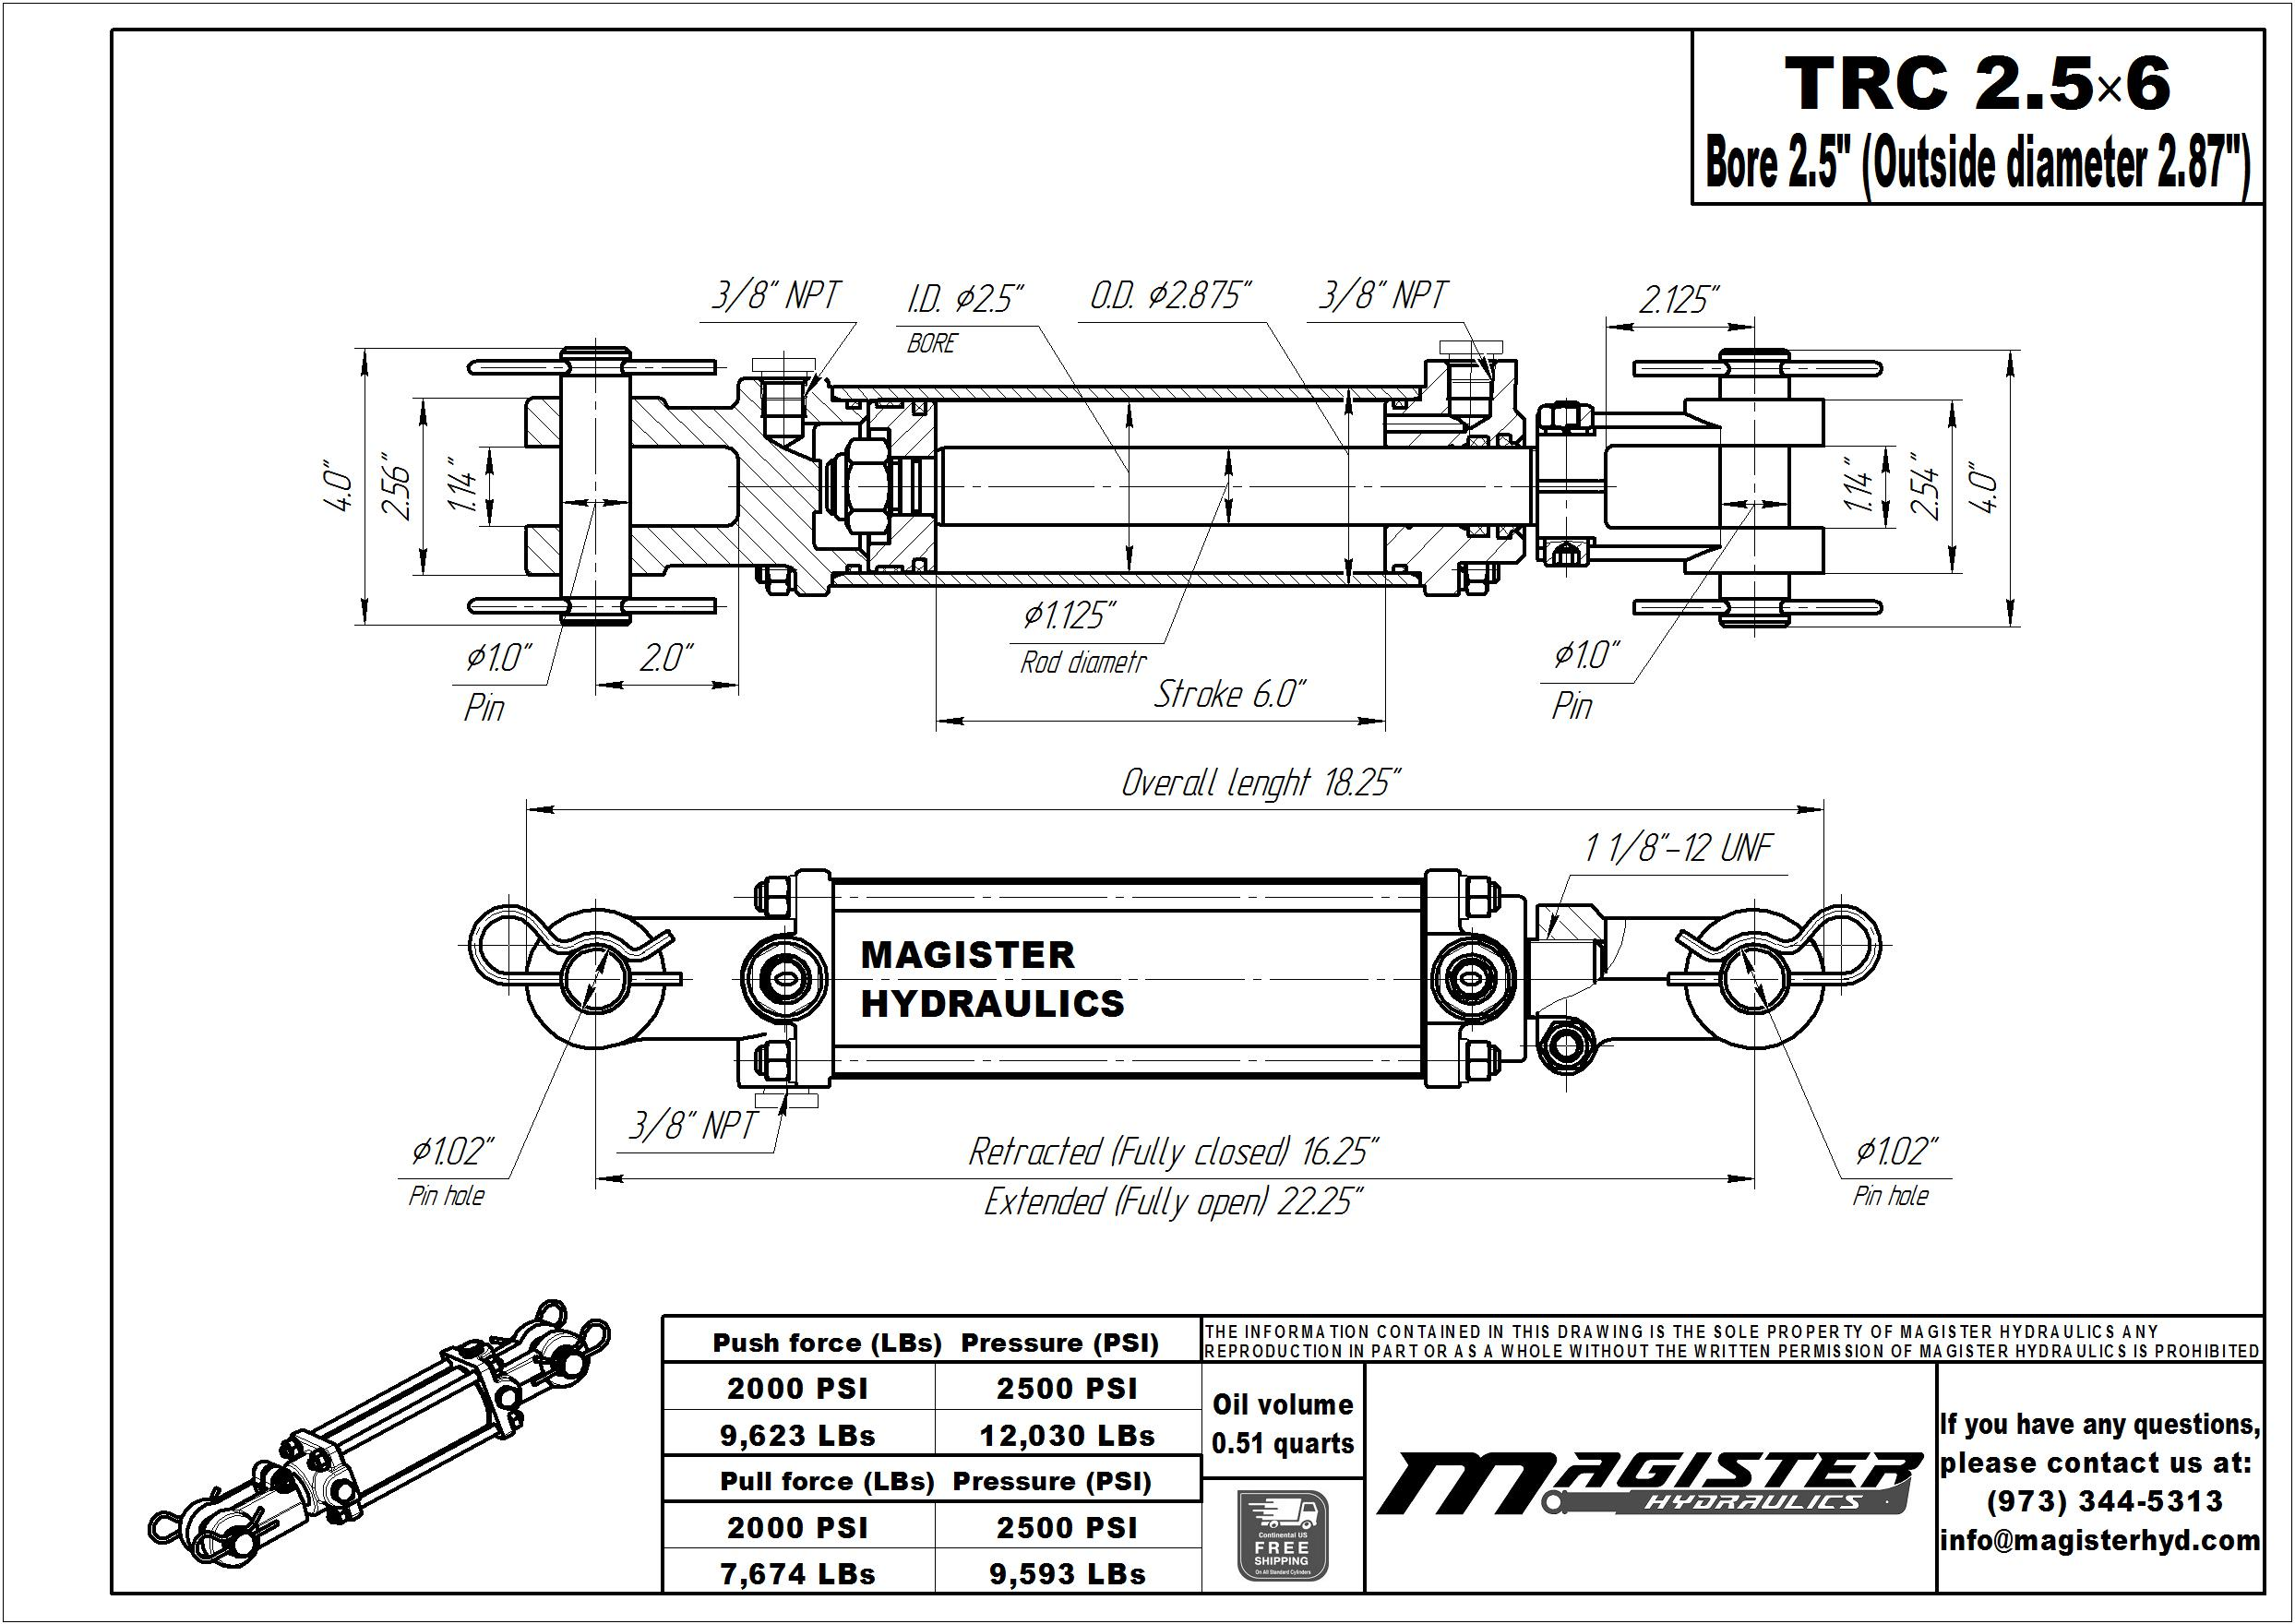 2.5 bore x 6 stroke hydraulic cylinder, tie rod double acting cylinder   Magister Hydraulics